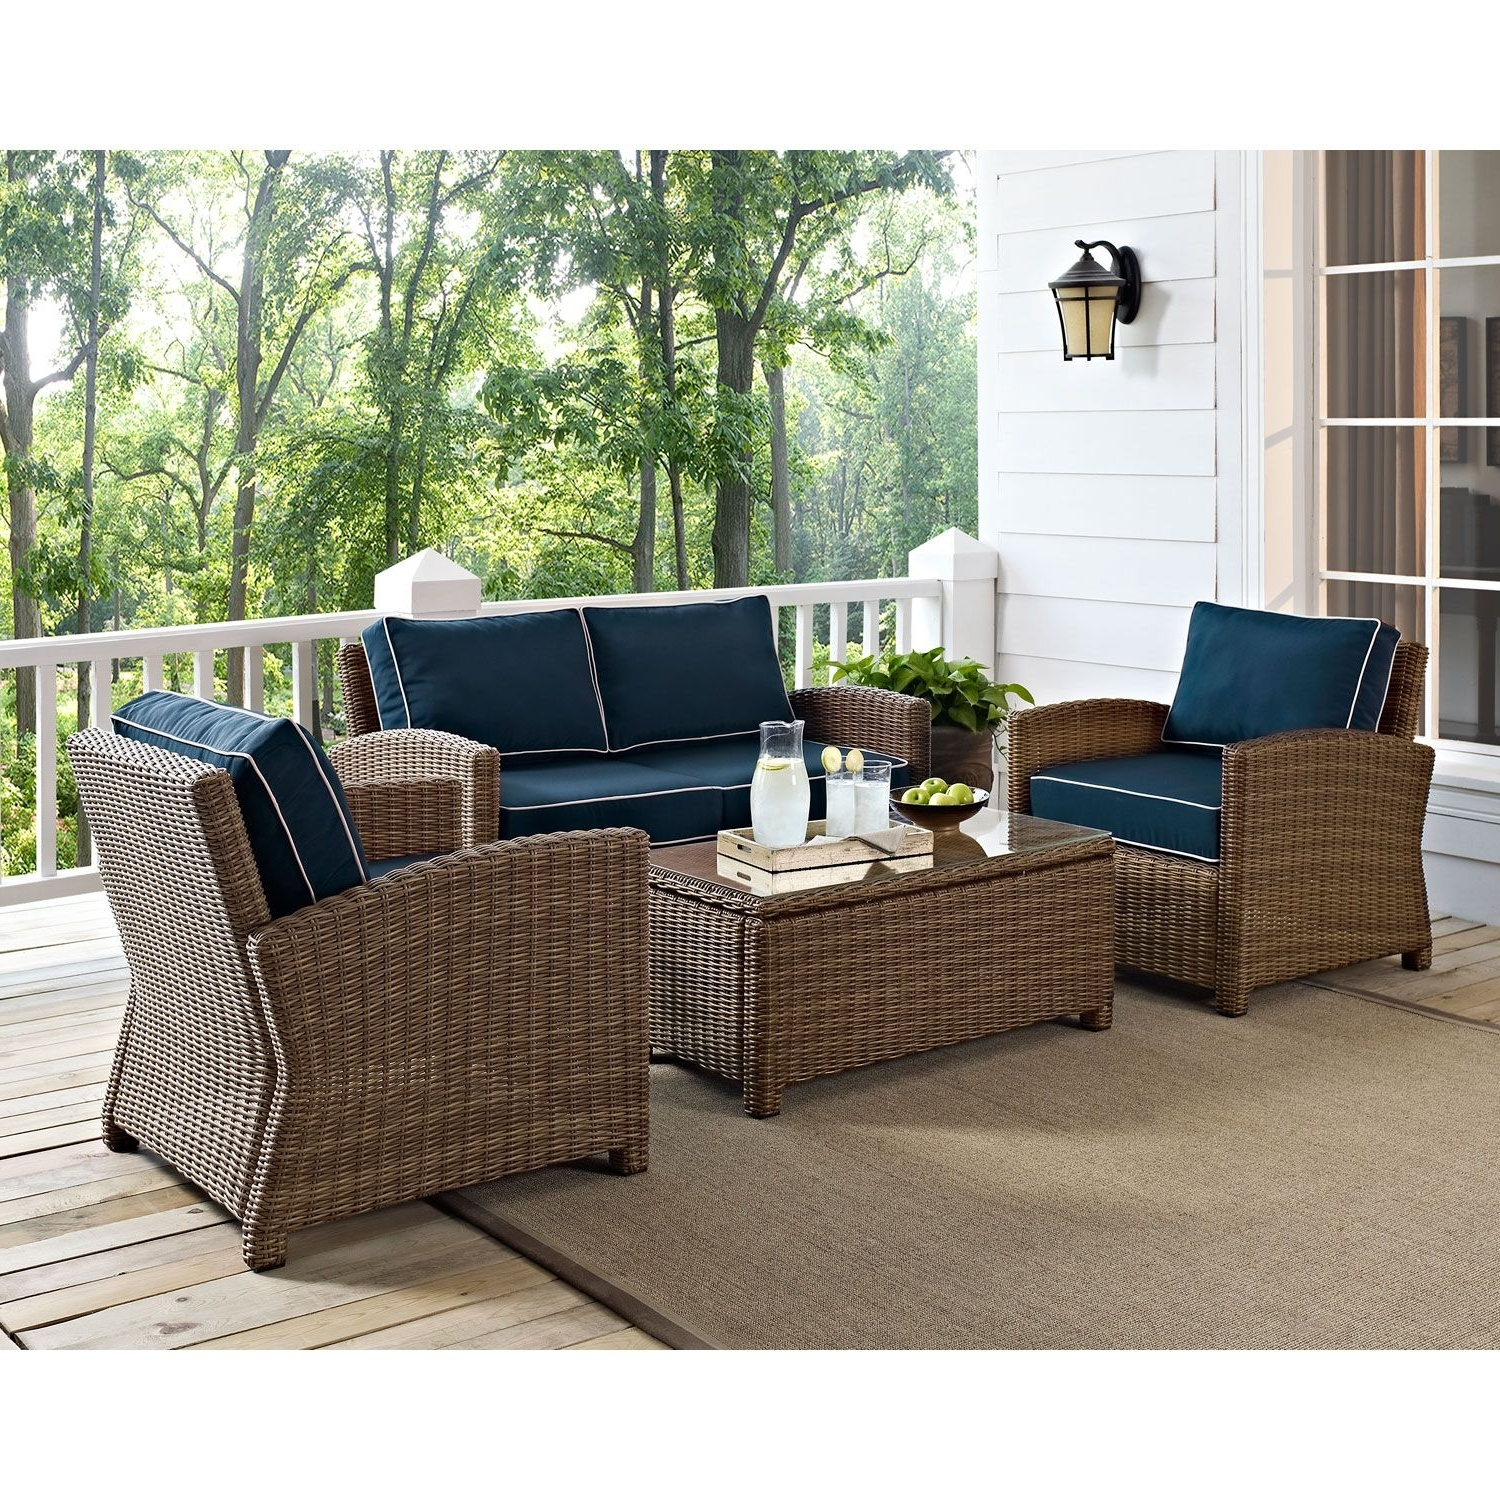 Favorite Crosley Furniture Bradenton 4 Piece Outdoor Wicker Seating Set With With Regard To Patio Conversation Sets With Blue Cushions (View 1 of 20)